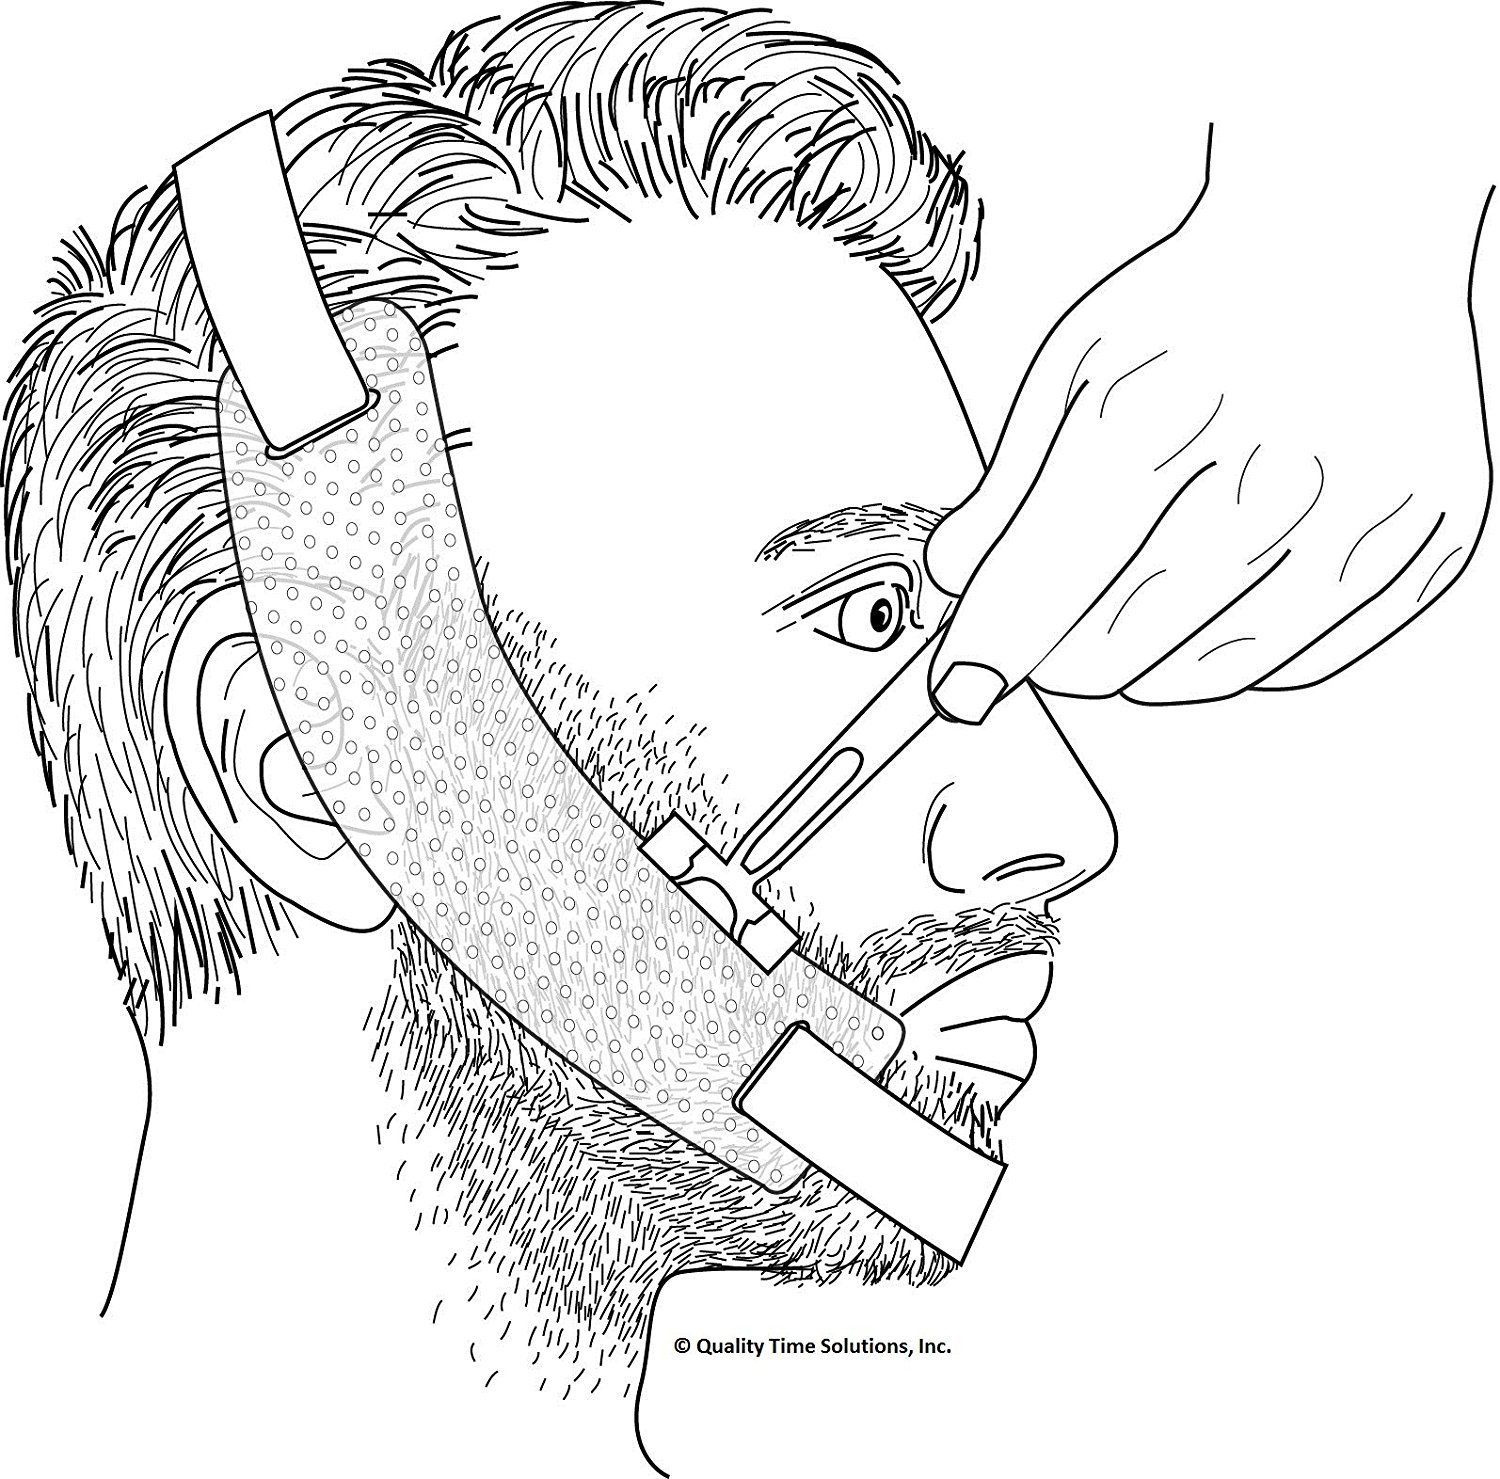 photograph relating to Beard Shaping Template Printable identified as 8 Weird Mens Grooming Equipment That Yourself Hardly ever Realized Existed